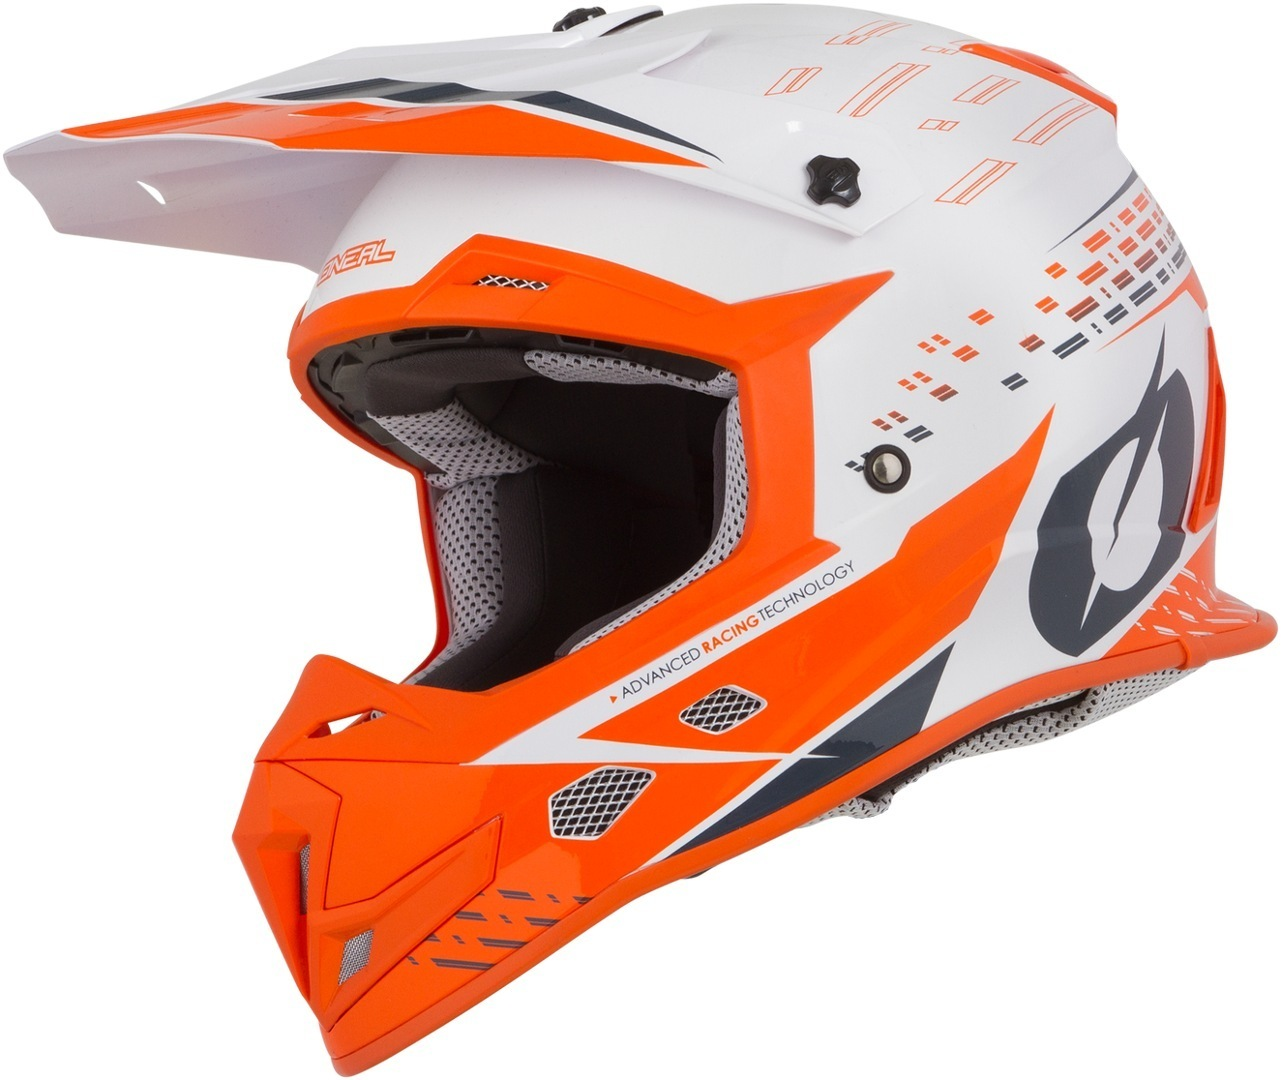 Oneal 5Series Trace Motocross Helm, weiss-orange, Größe M, weiss-orange, Größe M